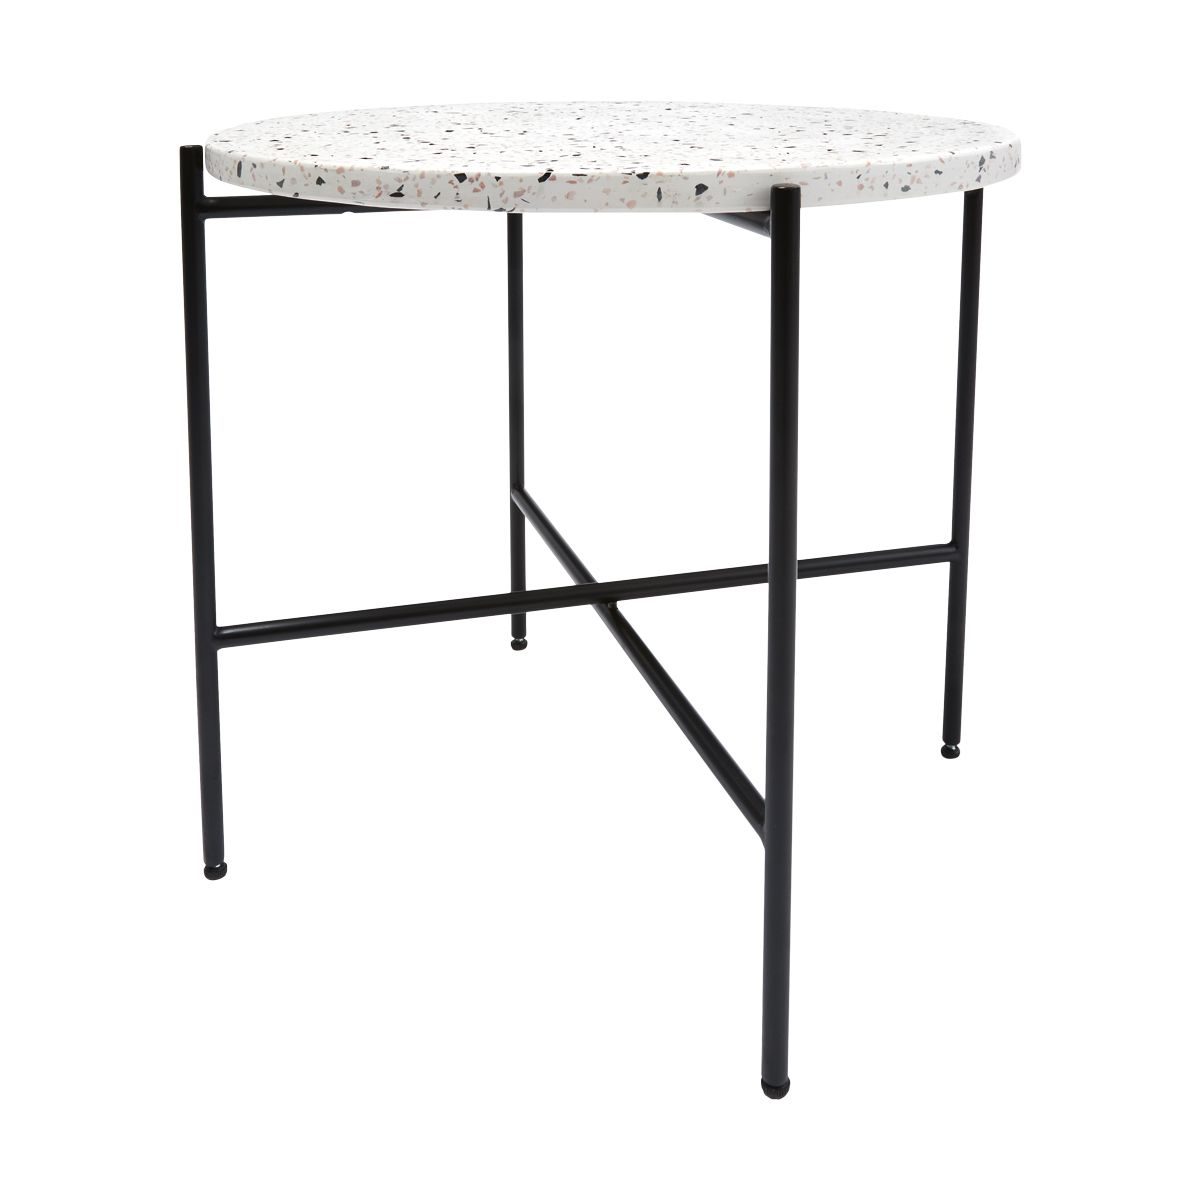 terrazzo side table kmart for the home outdoor round tables living room small tall coffee inch lamp ikea play floating feather light shade hotel lamps with usb ports ryobi brown